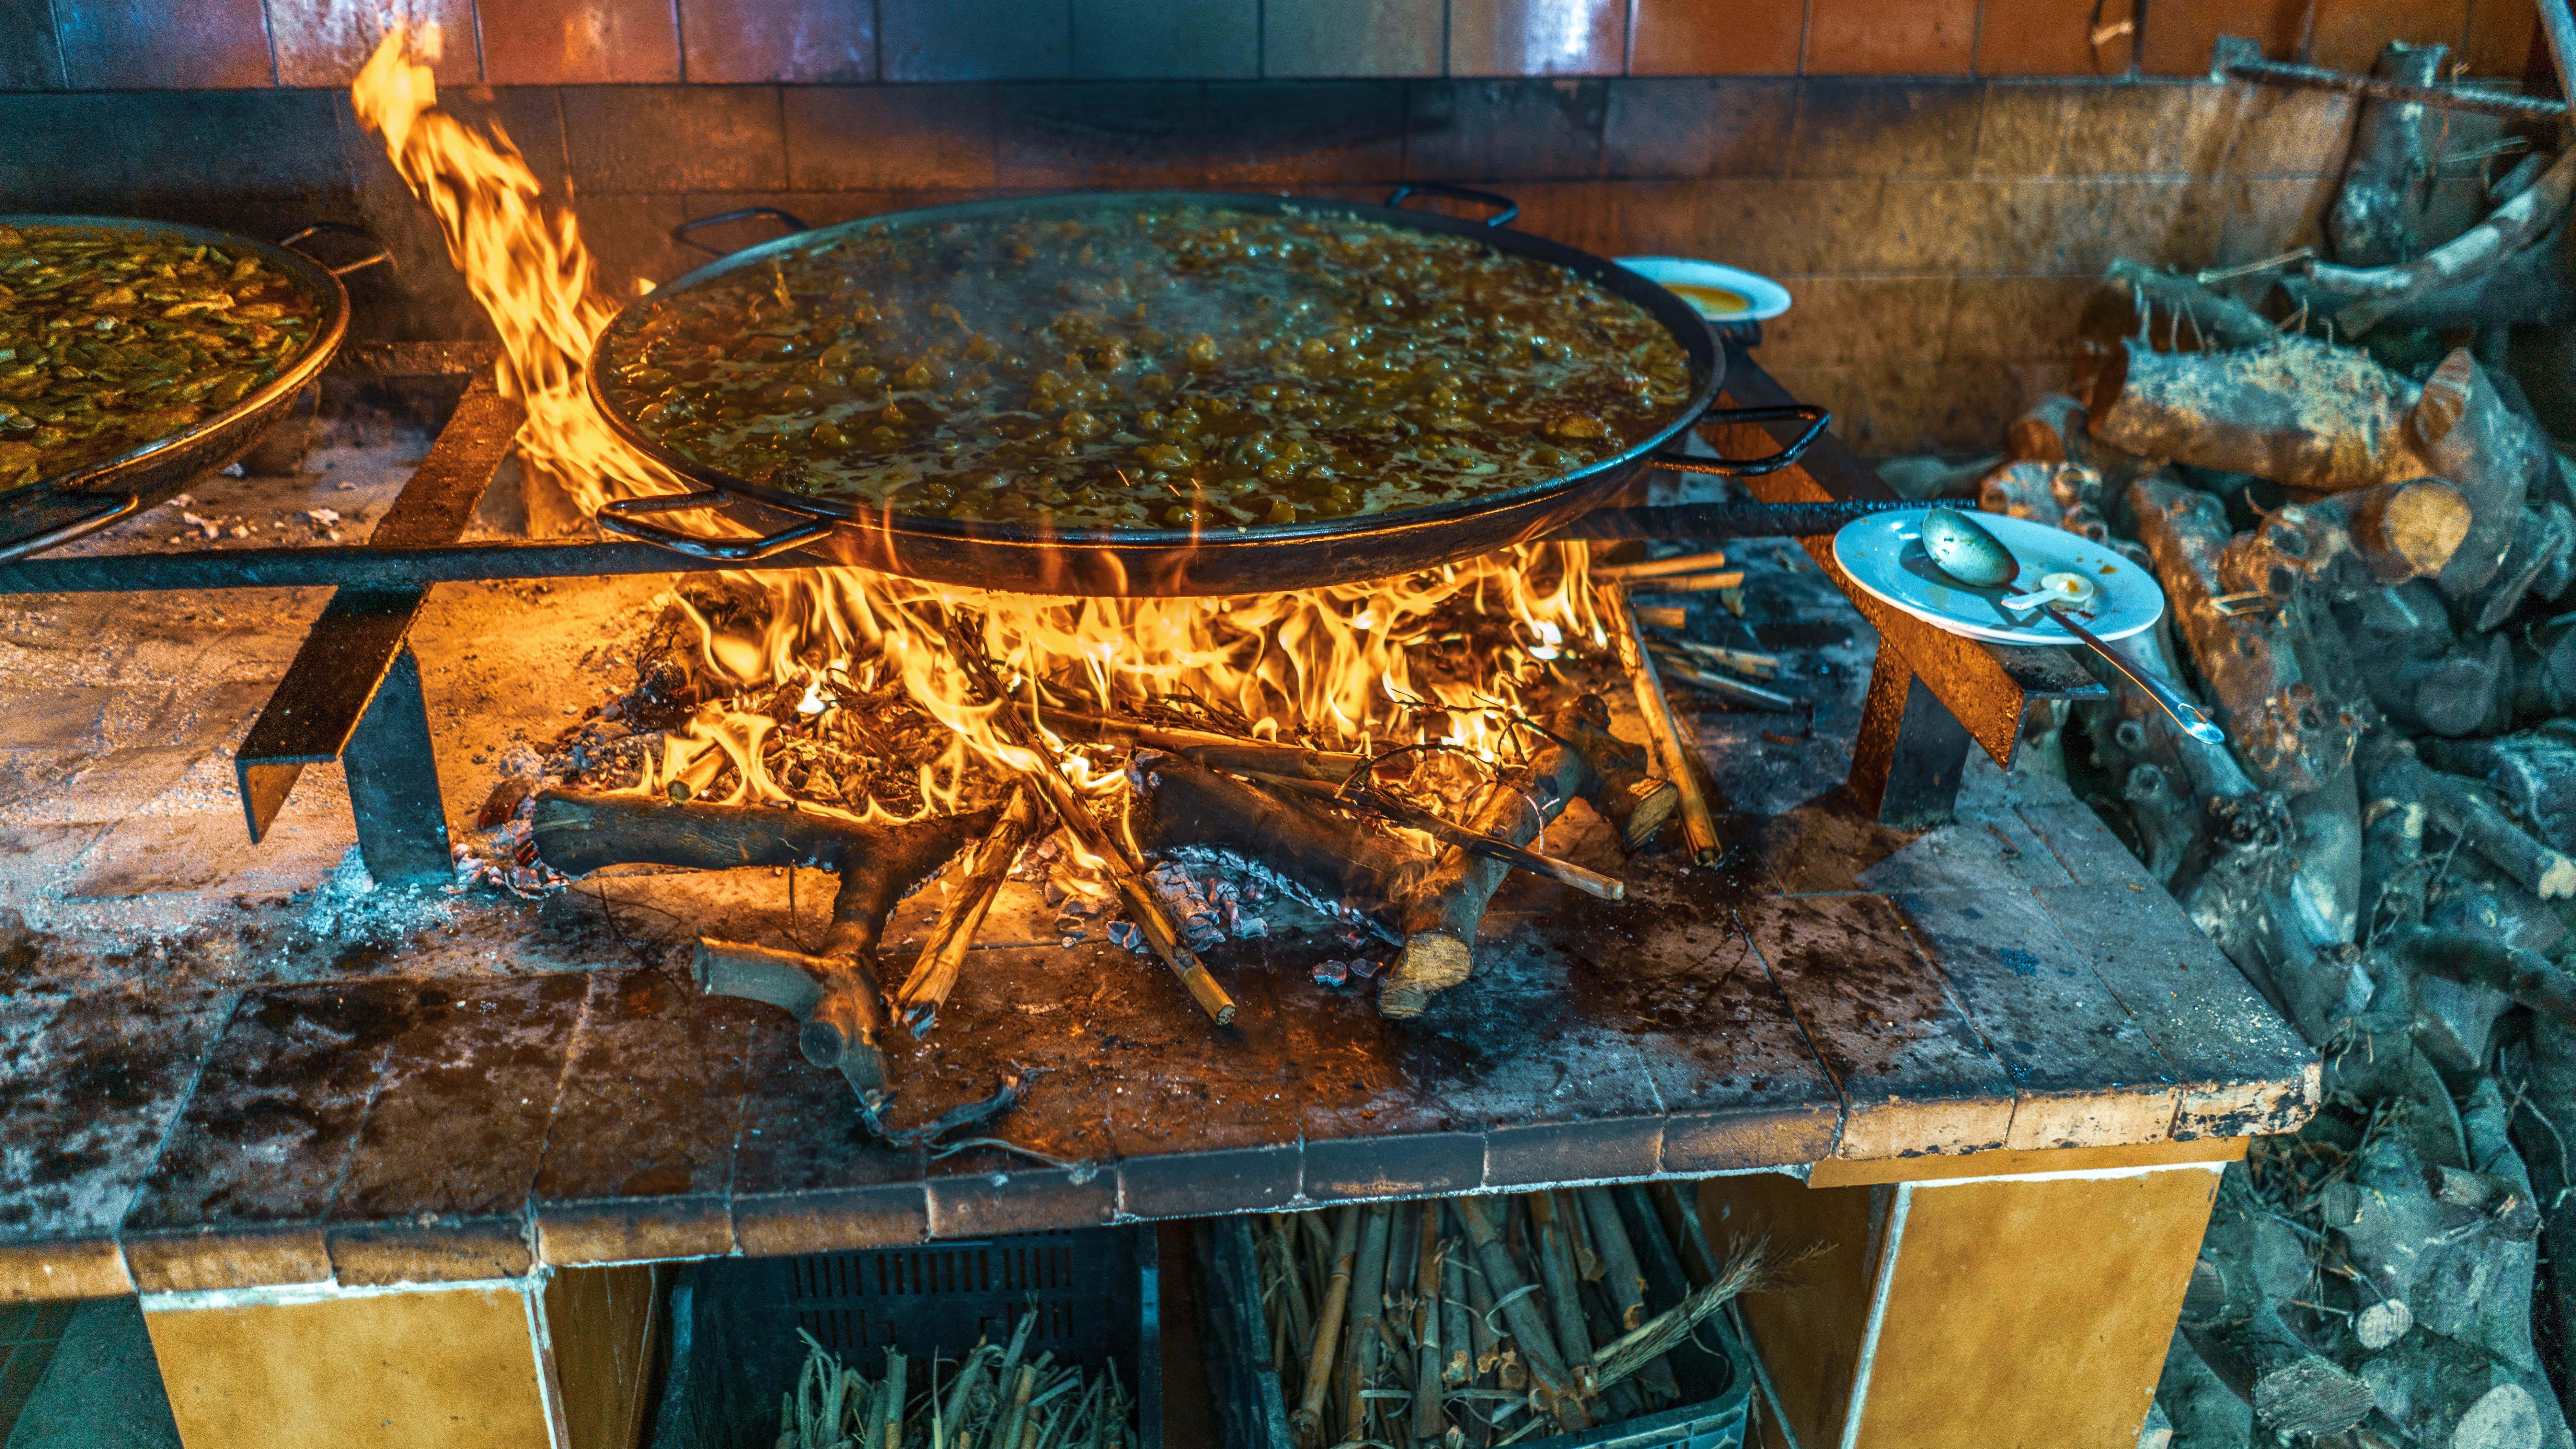 Indulging in traditional paella from Valencia is one of the best things to do in Spain